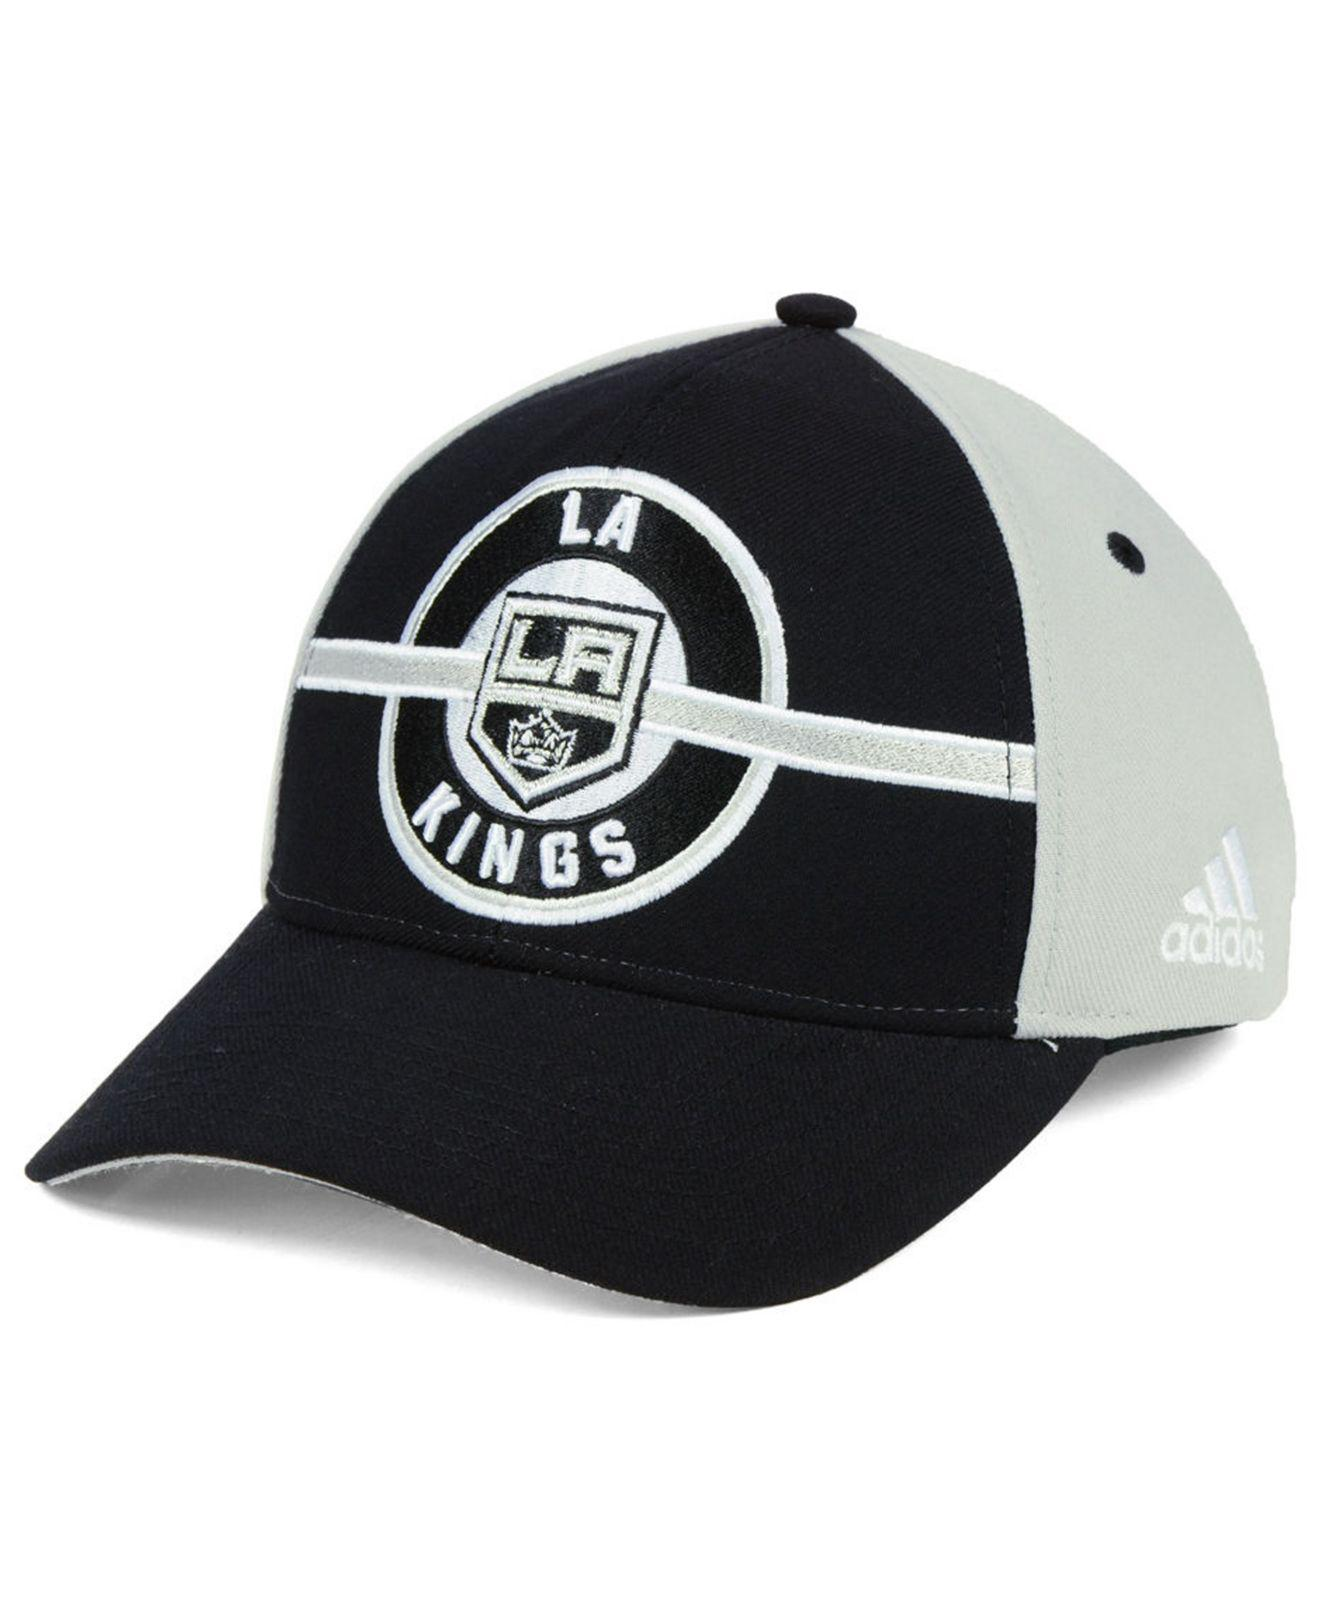 Lyst - Adidas Los Angeles Kings Circle Adjustable Cap in Black for Men 5a18c681d